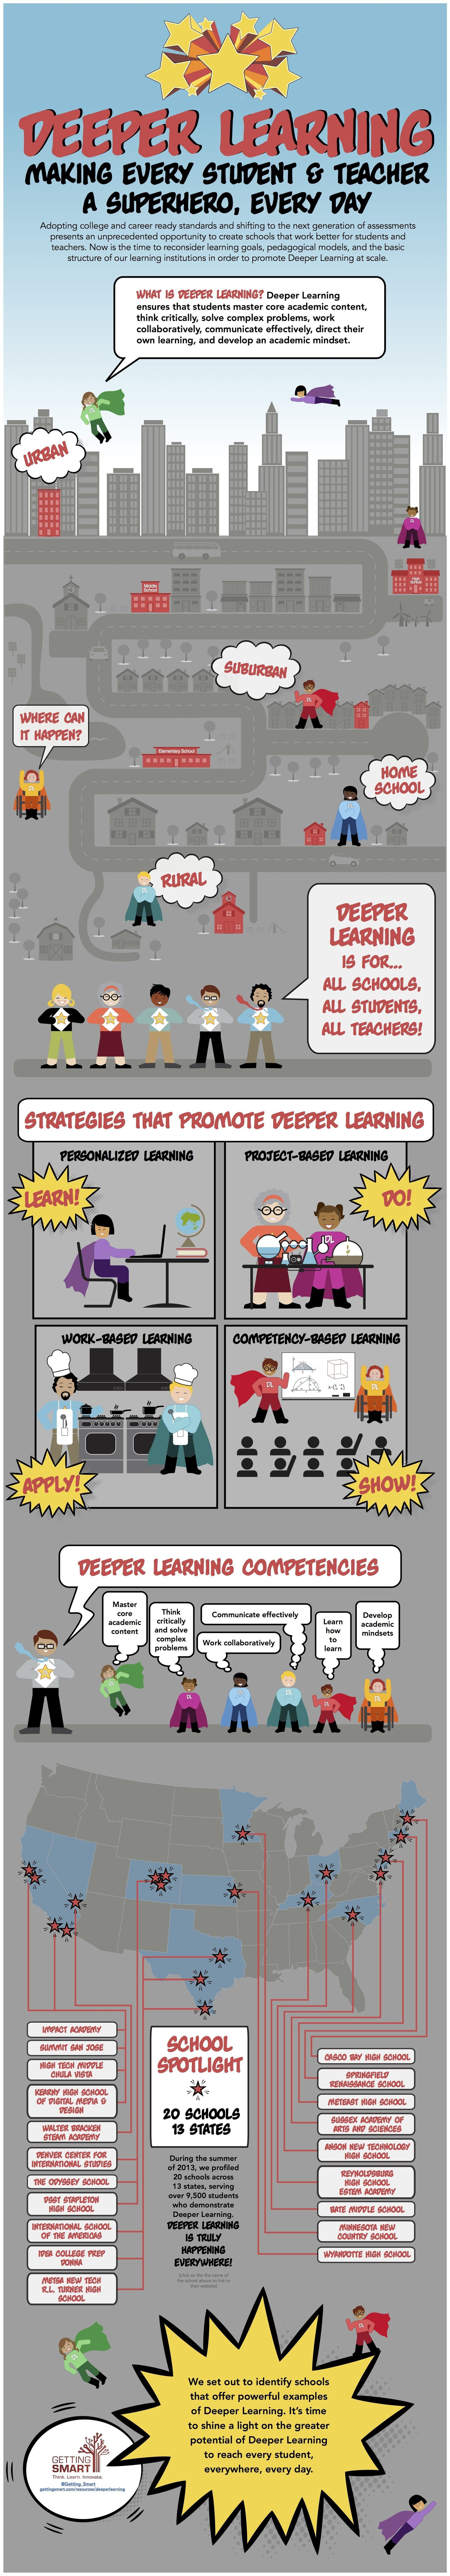 Deeper Learning Infographic